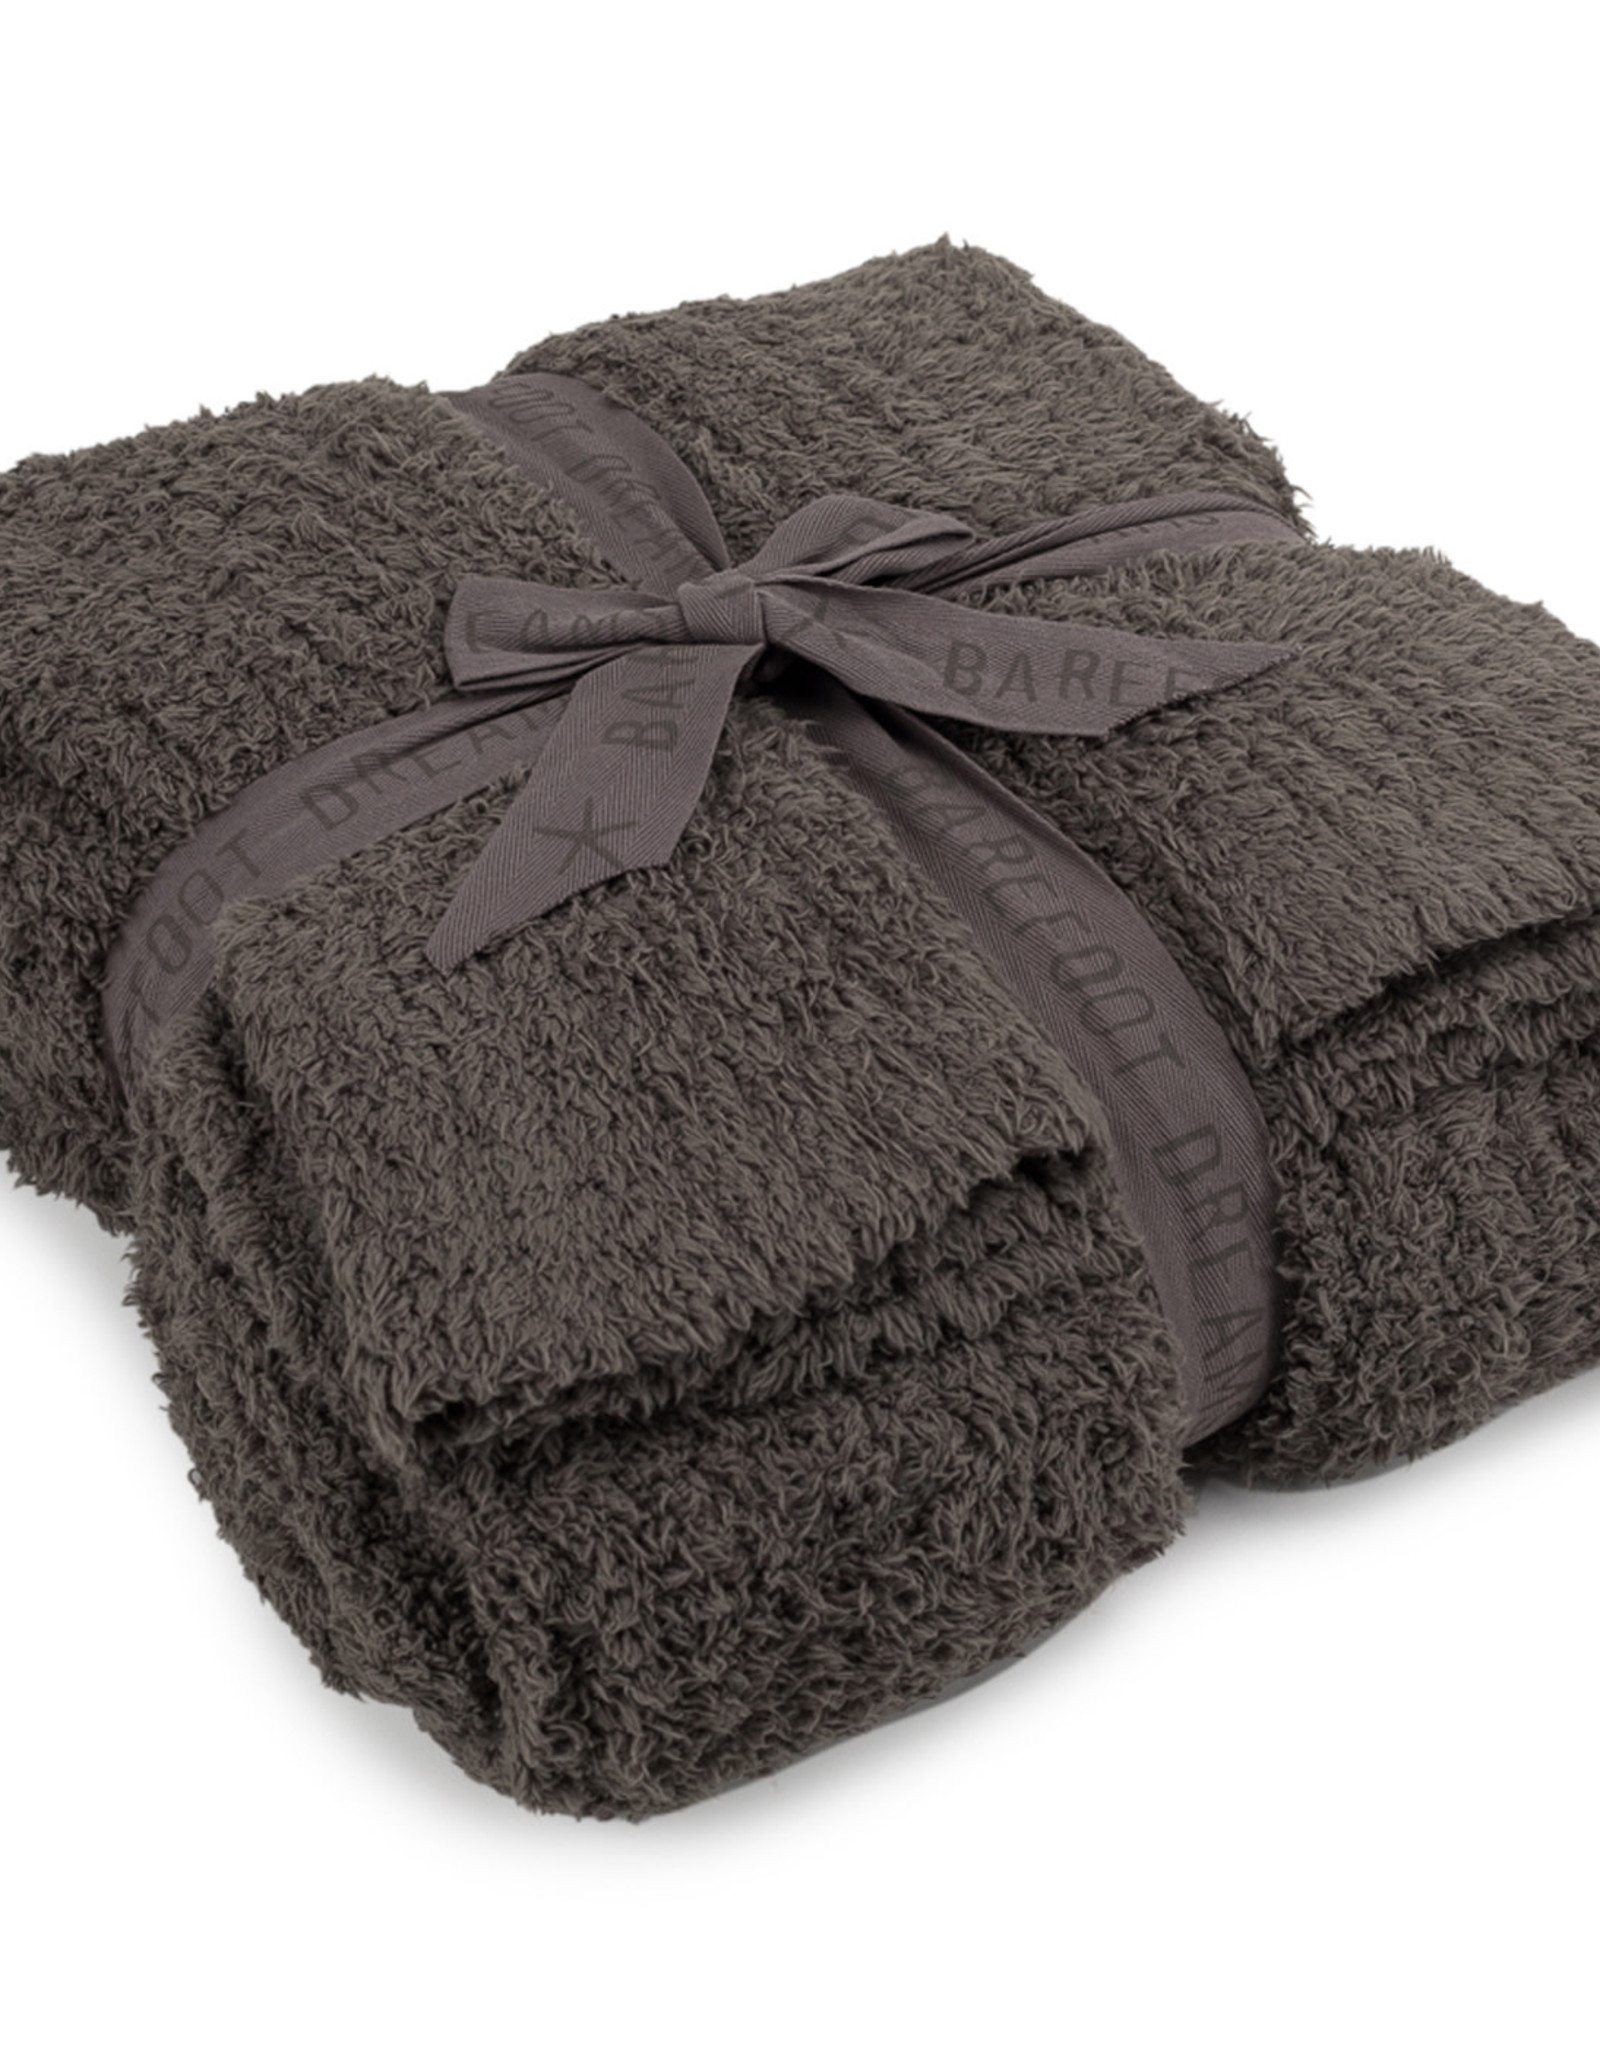 Barefoot Dreams Barefoot Dreams Cozychic Ribbed Throw Blanket Charcoal